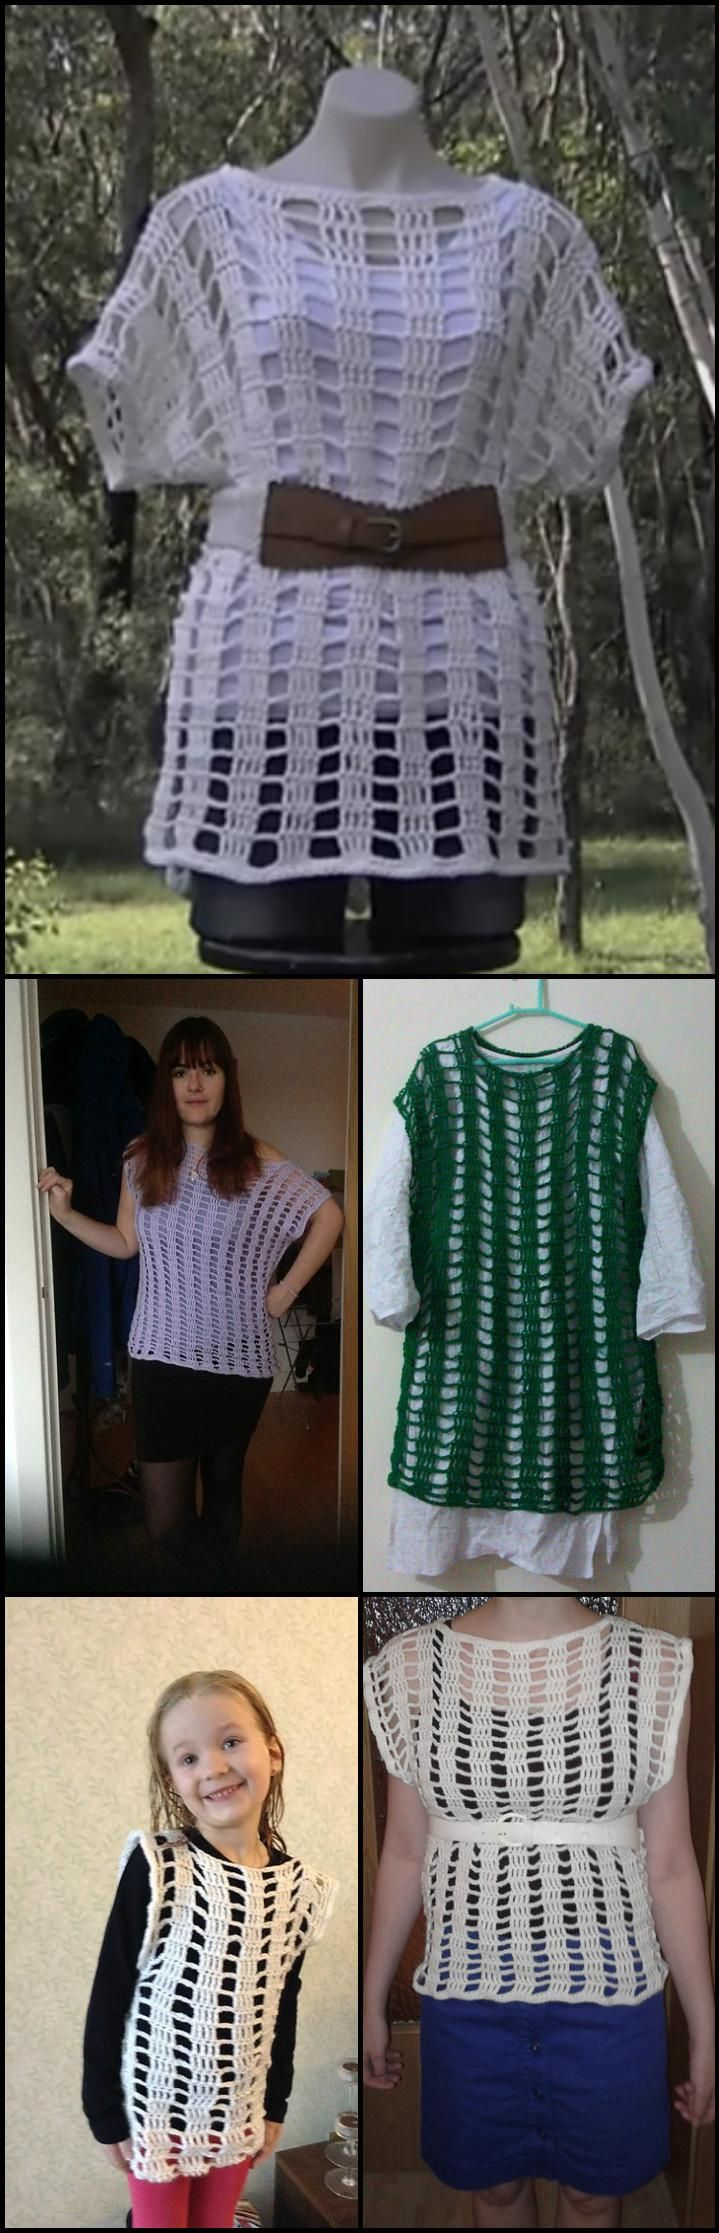 50+ Quick & Easy Crochet Summer Tops - Free Patterns - Page 9 of 9 - DIY & Crafts